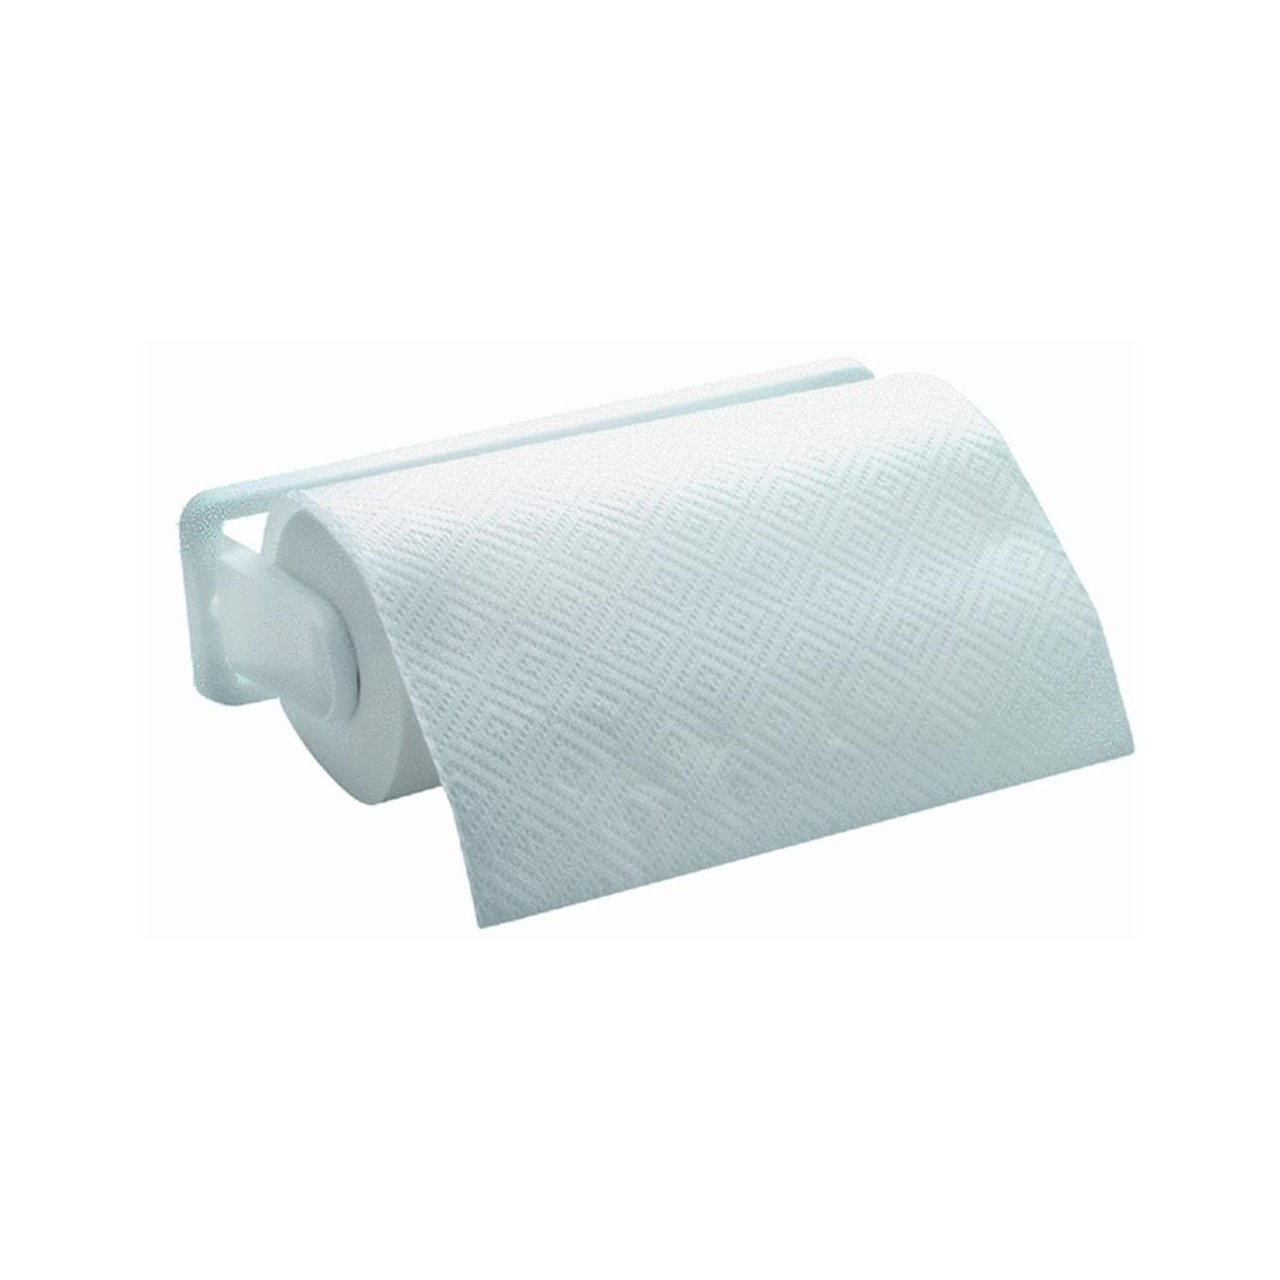 Amazon.com: Rubbermaid 2361-RD-WHT Paper Towel Holder: Paper Towel ...